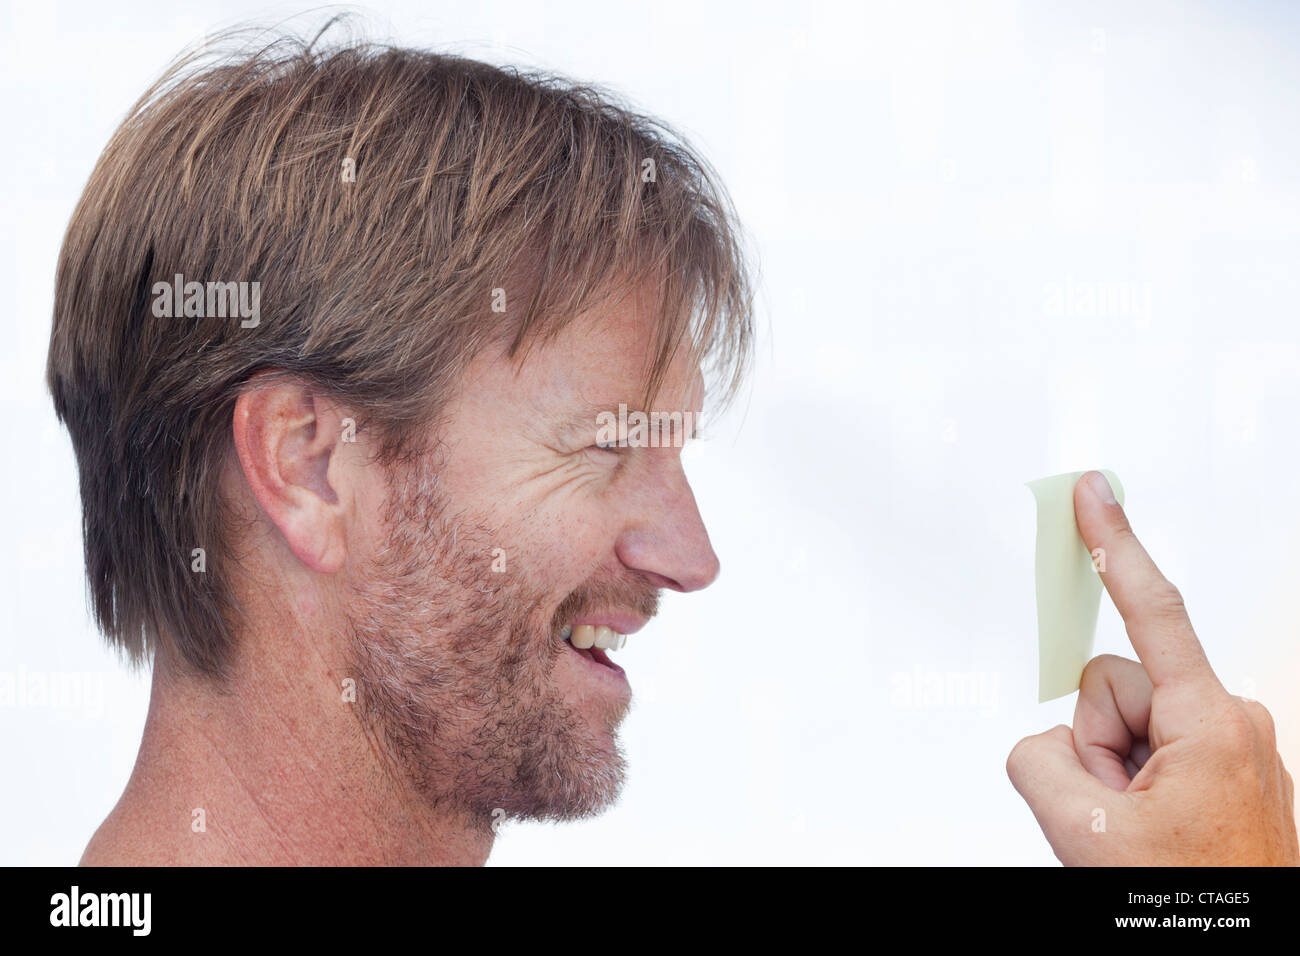 Middle aged man with beard growth looking at yellow note stuck to his finger. - Stock Image